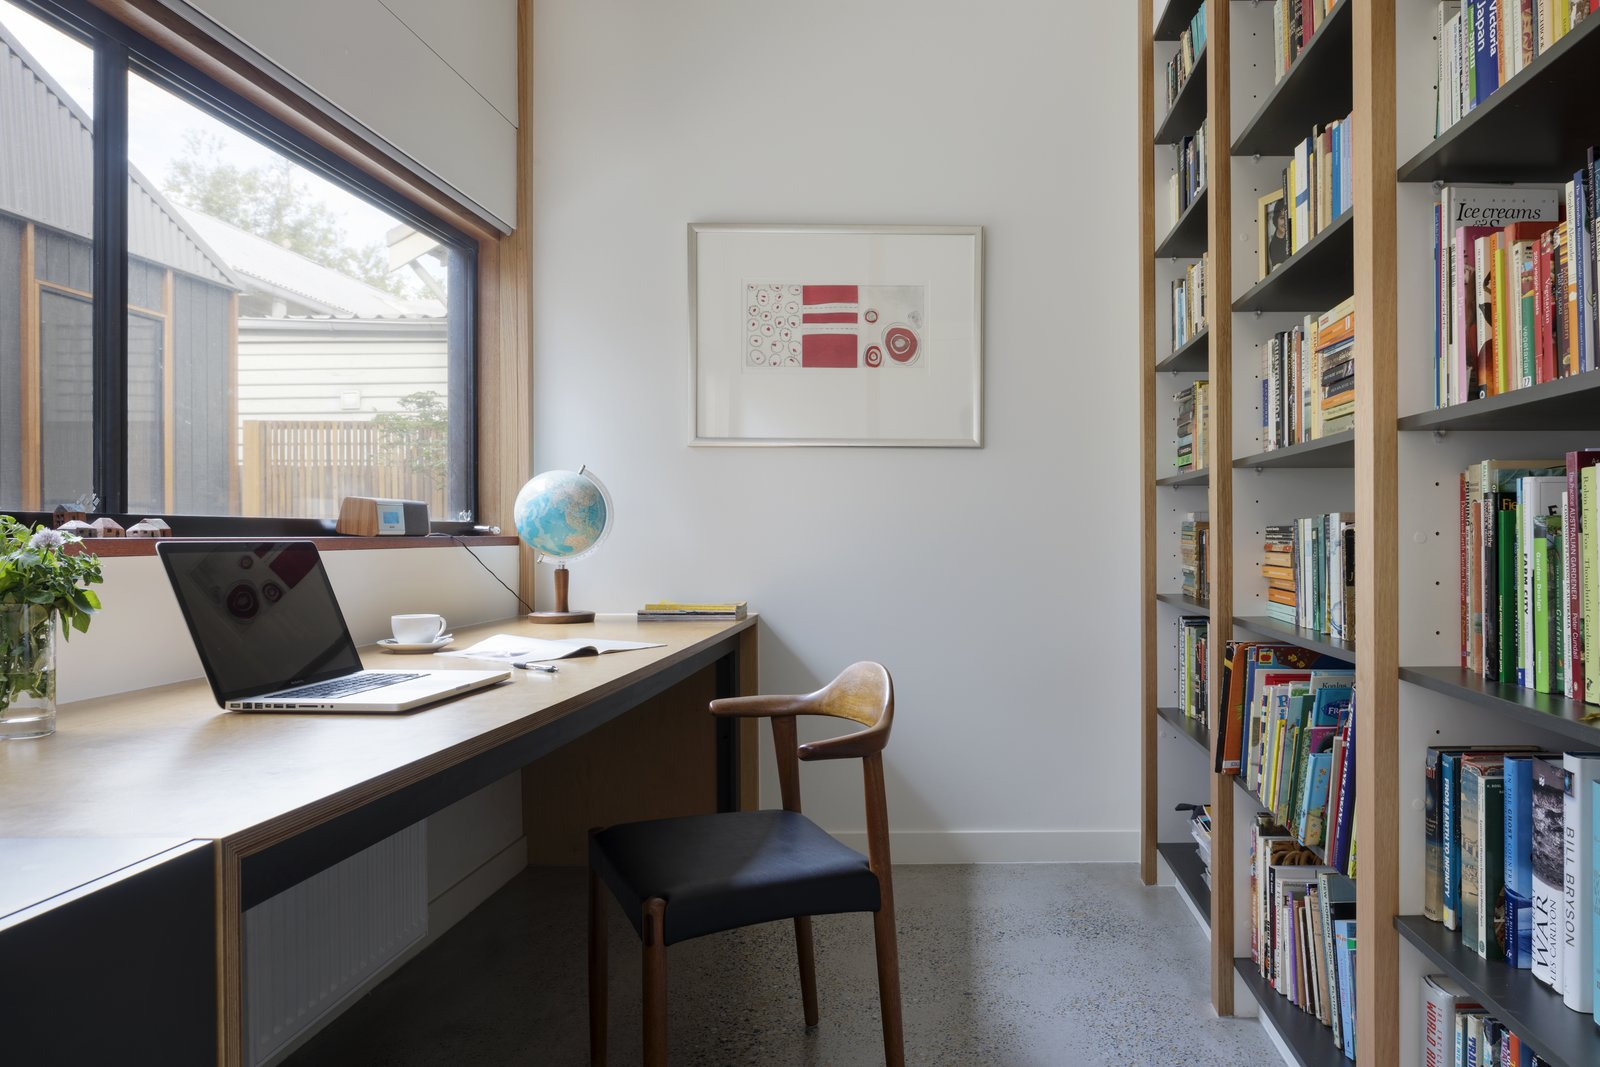 Office, Chair, Desk, Bookcase, and Concrete Floor One homeowner is studying part-time and requested a quiet workspace in the home. Her desk is made out of plywood and licorice linea from Laminex.  Photo 8 of 10 in A Family Home in Australia Features a Playful Version of the Classic Pitched Roof